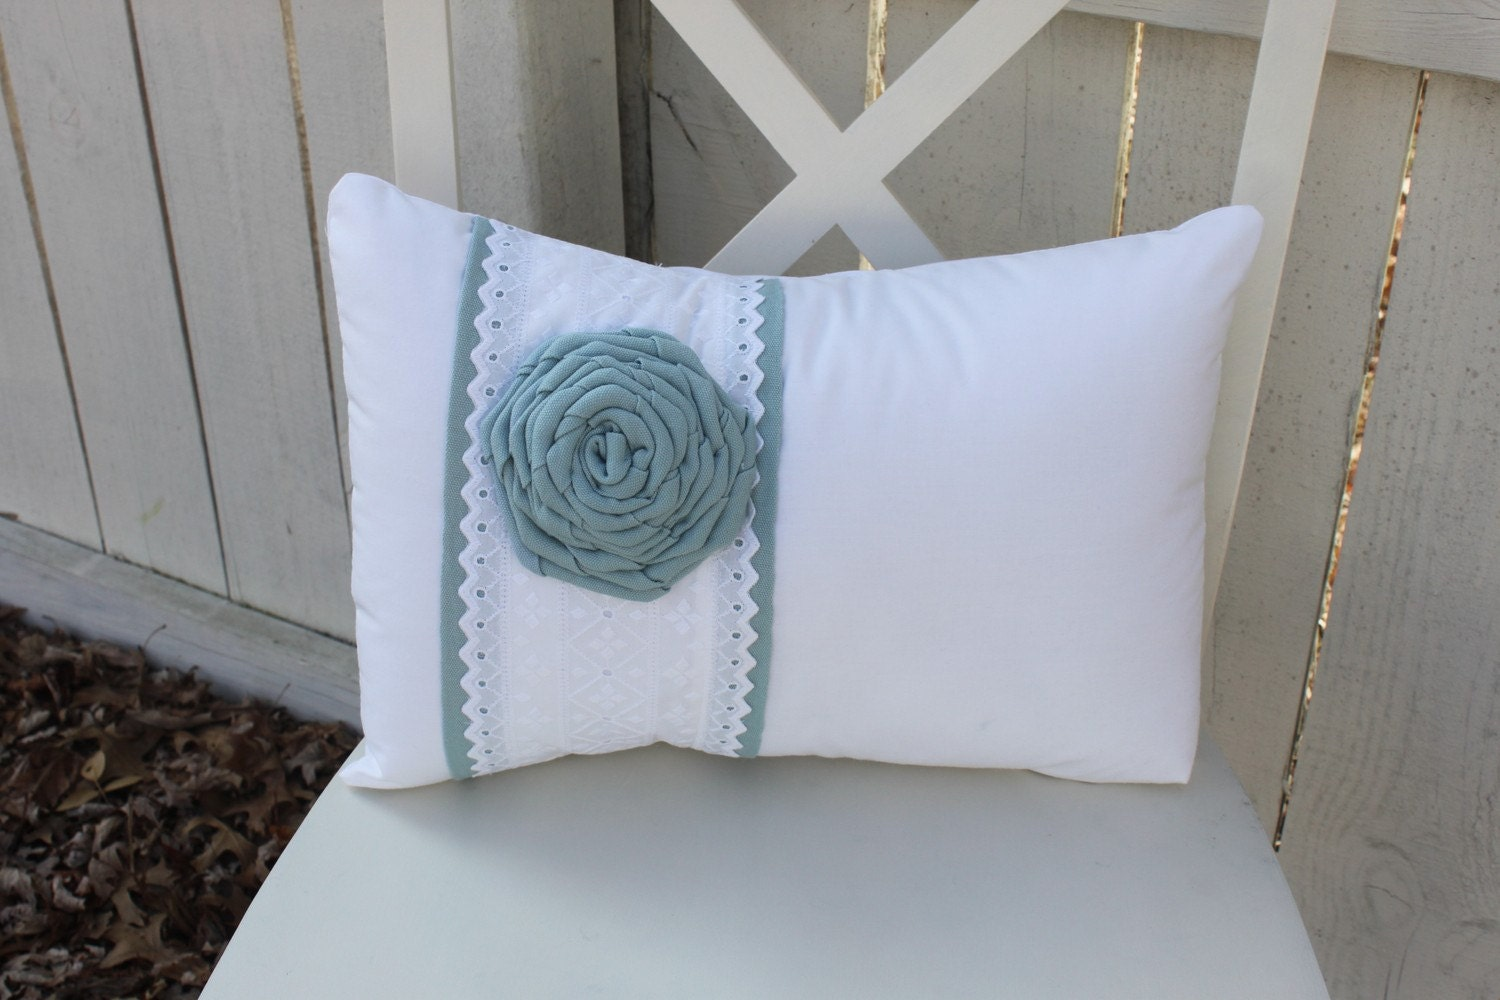 White Pillow with Eyelet Fabric Stripe & Blue Flower Rosette